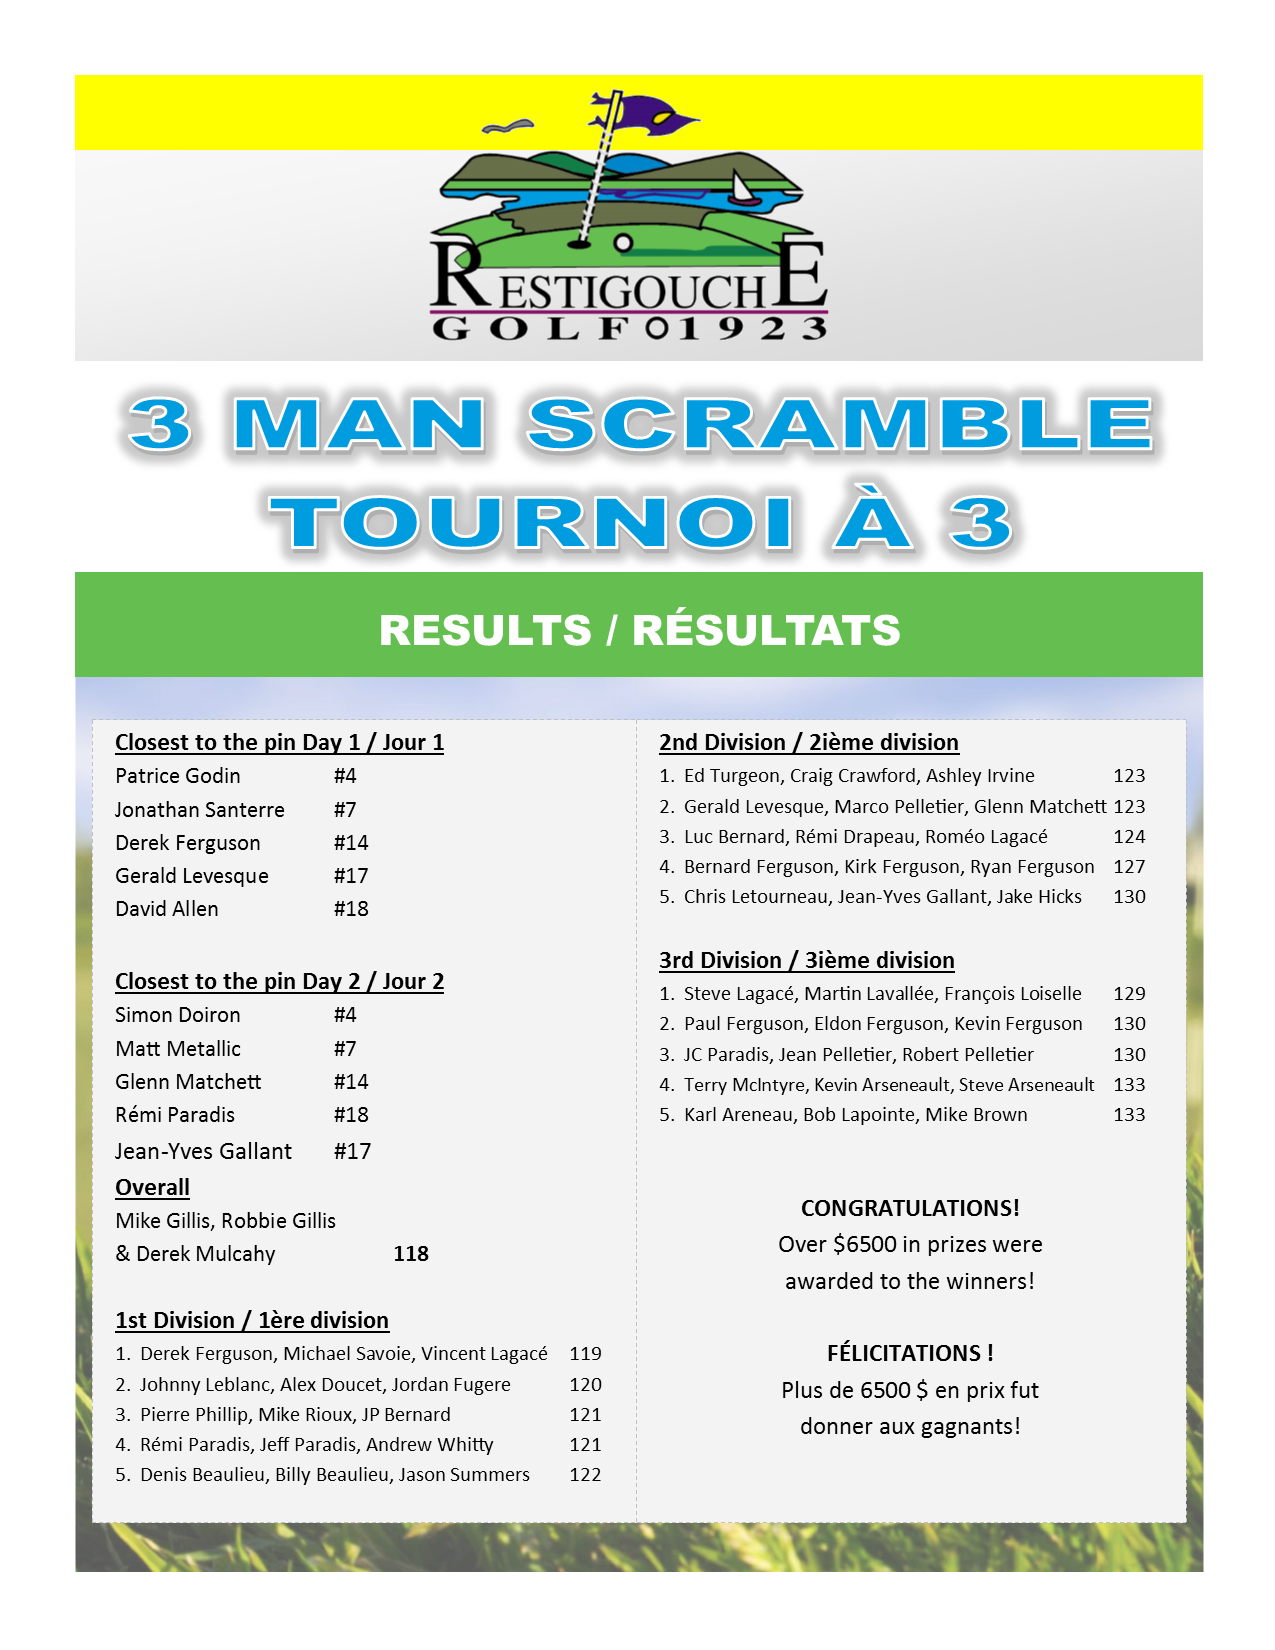 3man scramble results